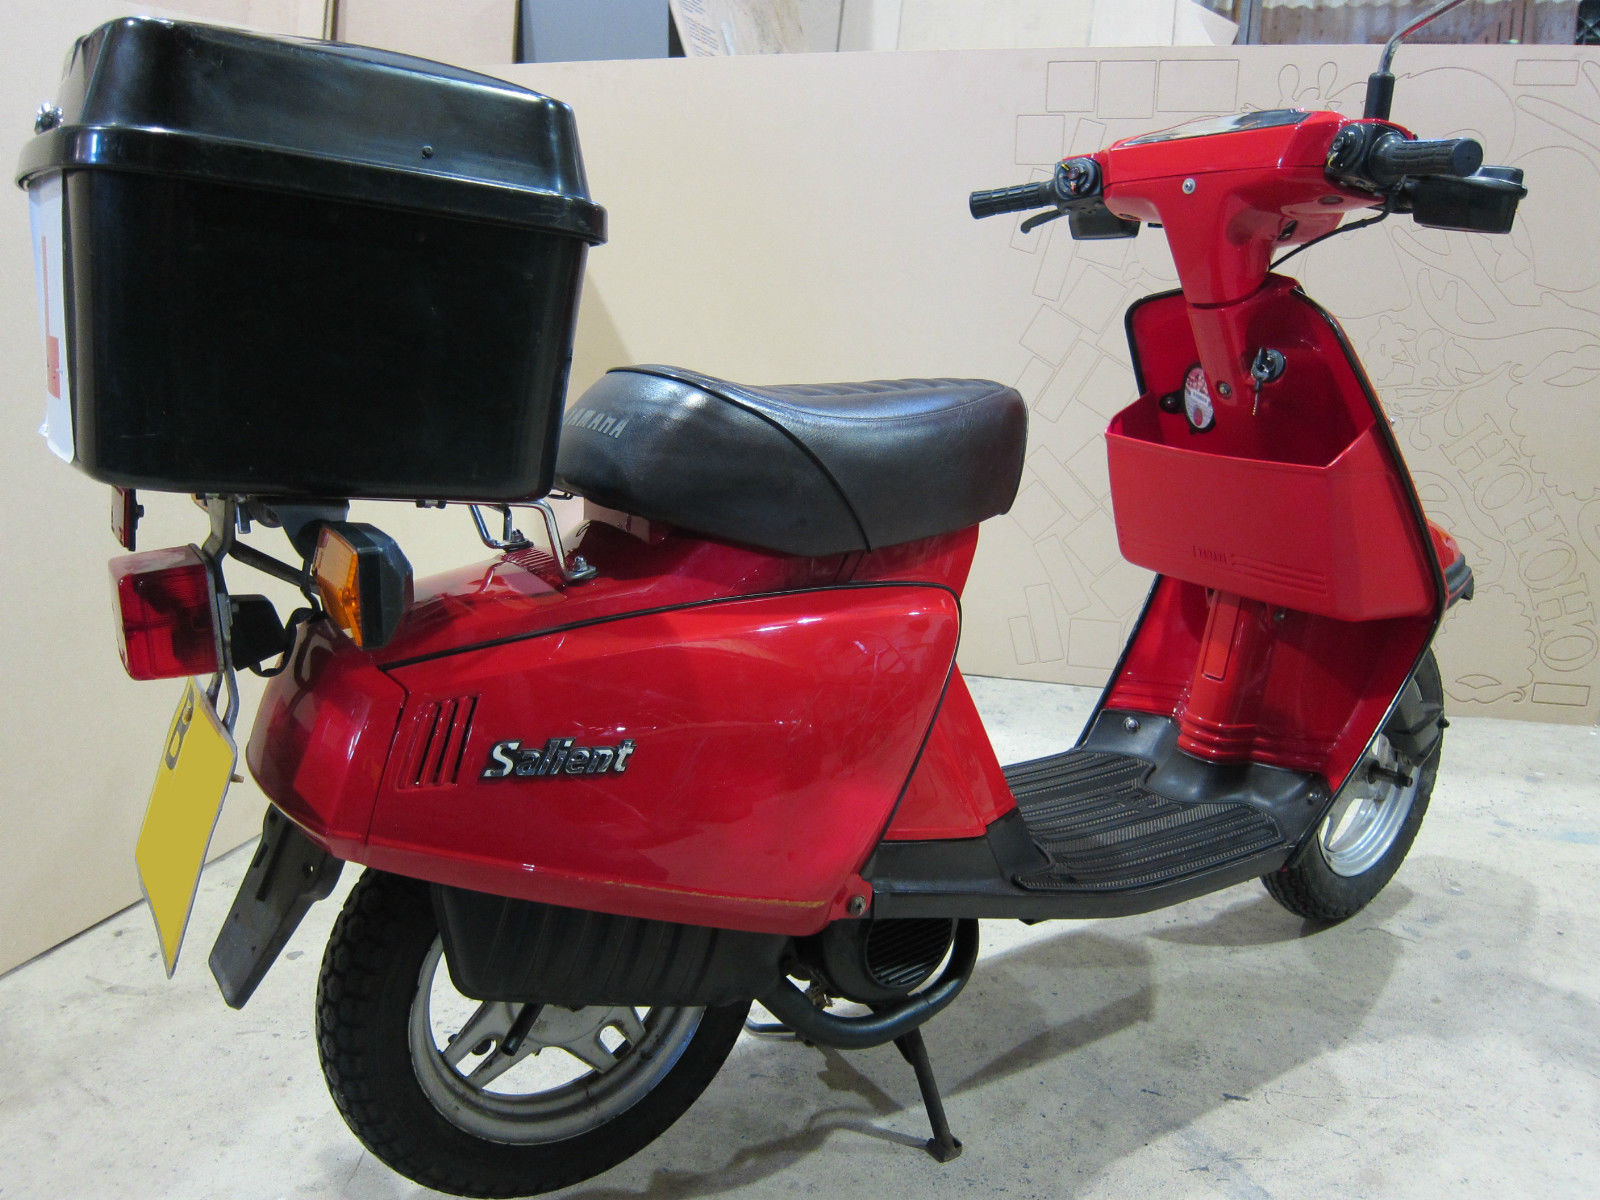 classic 1985 yamaha ca 50 salient scooter riva moped another one for spares. Black Bedroom Furniture Sets. Home Design Ideas